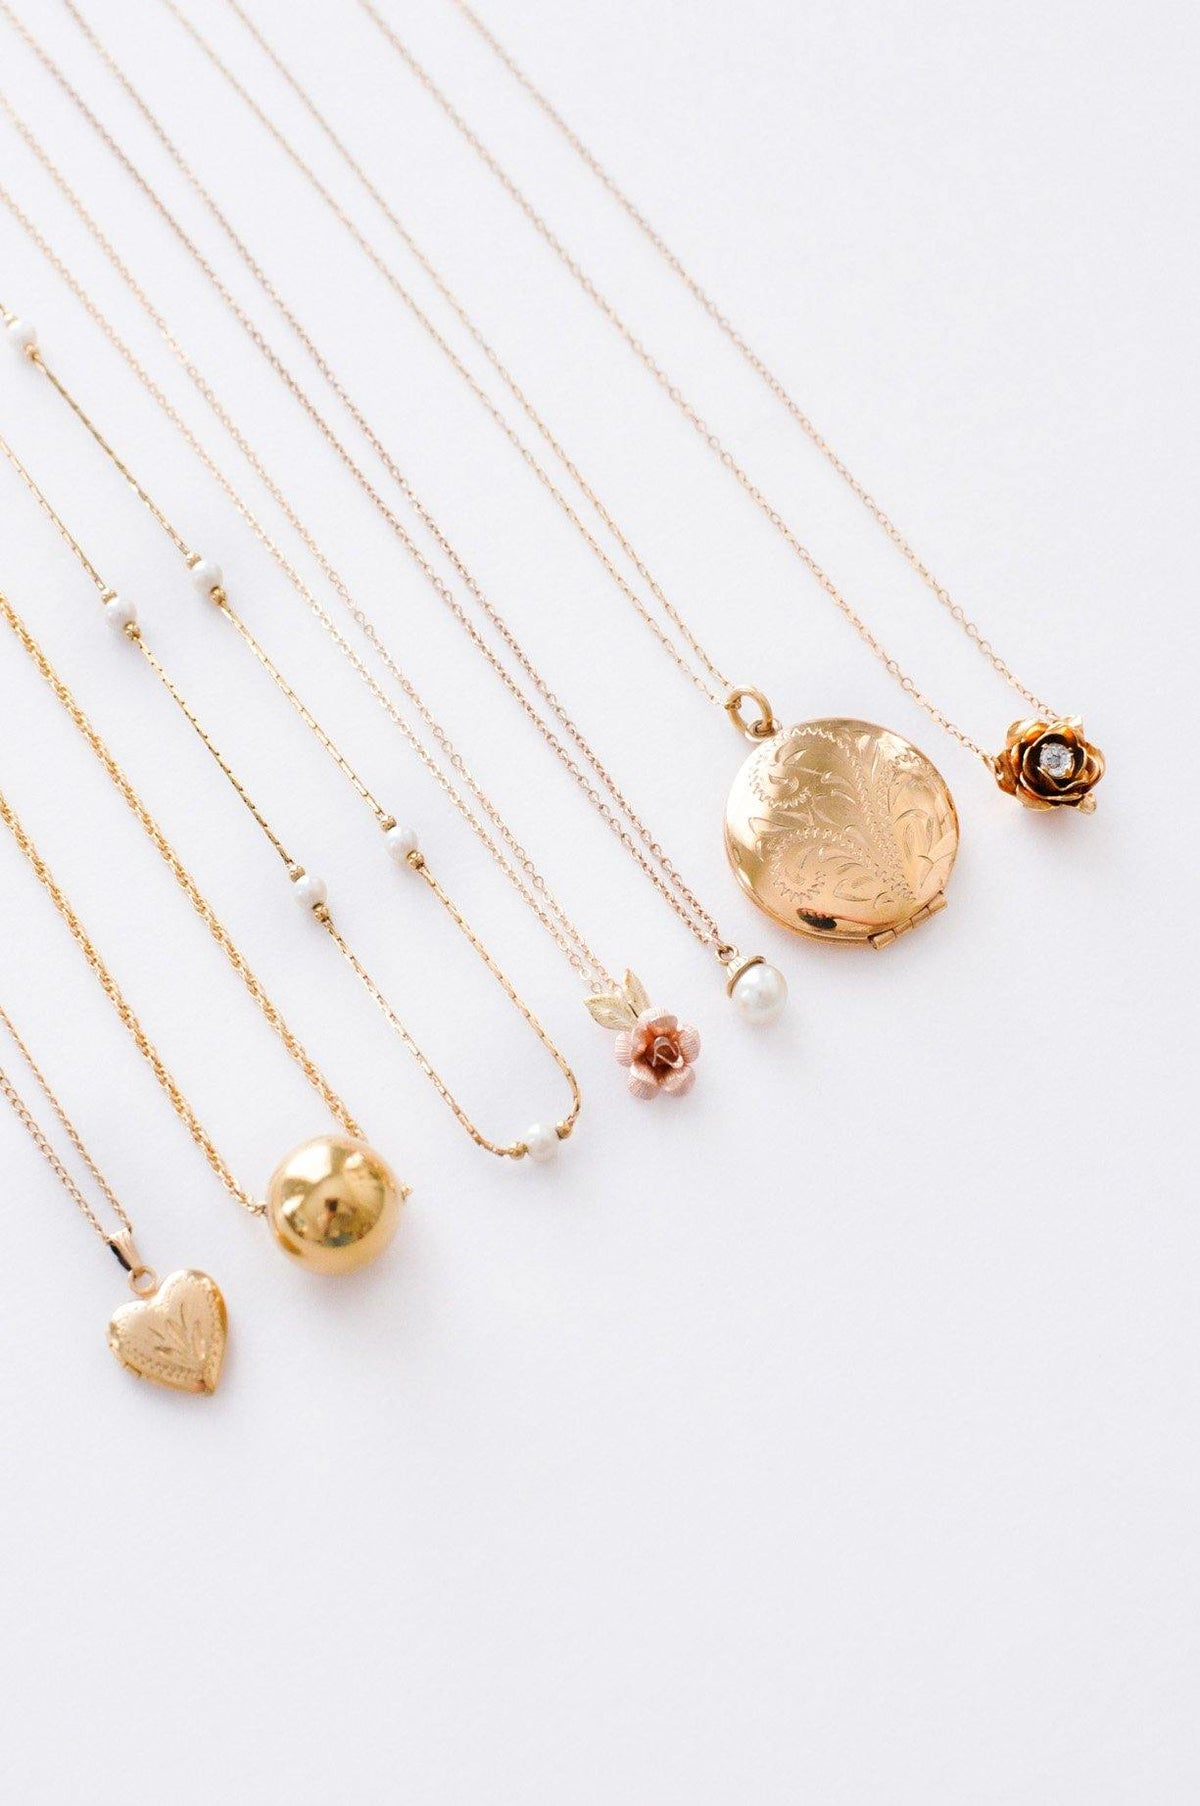 Dainty vintage necklaces from Sweet & Spark.